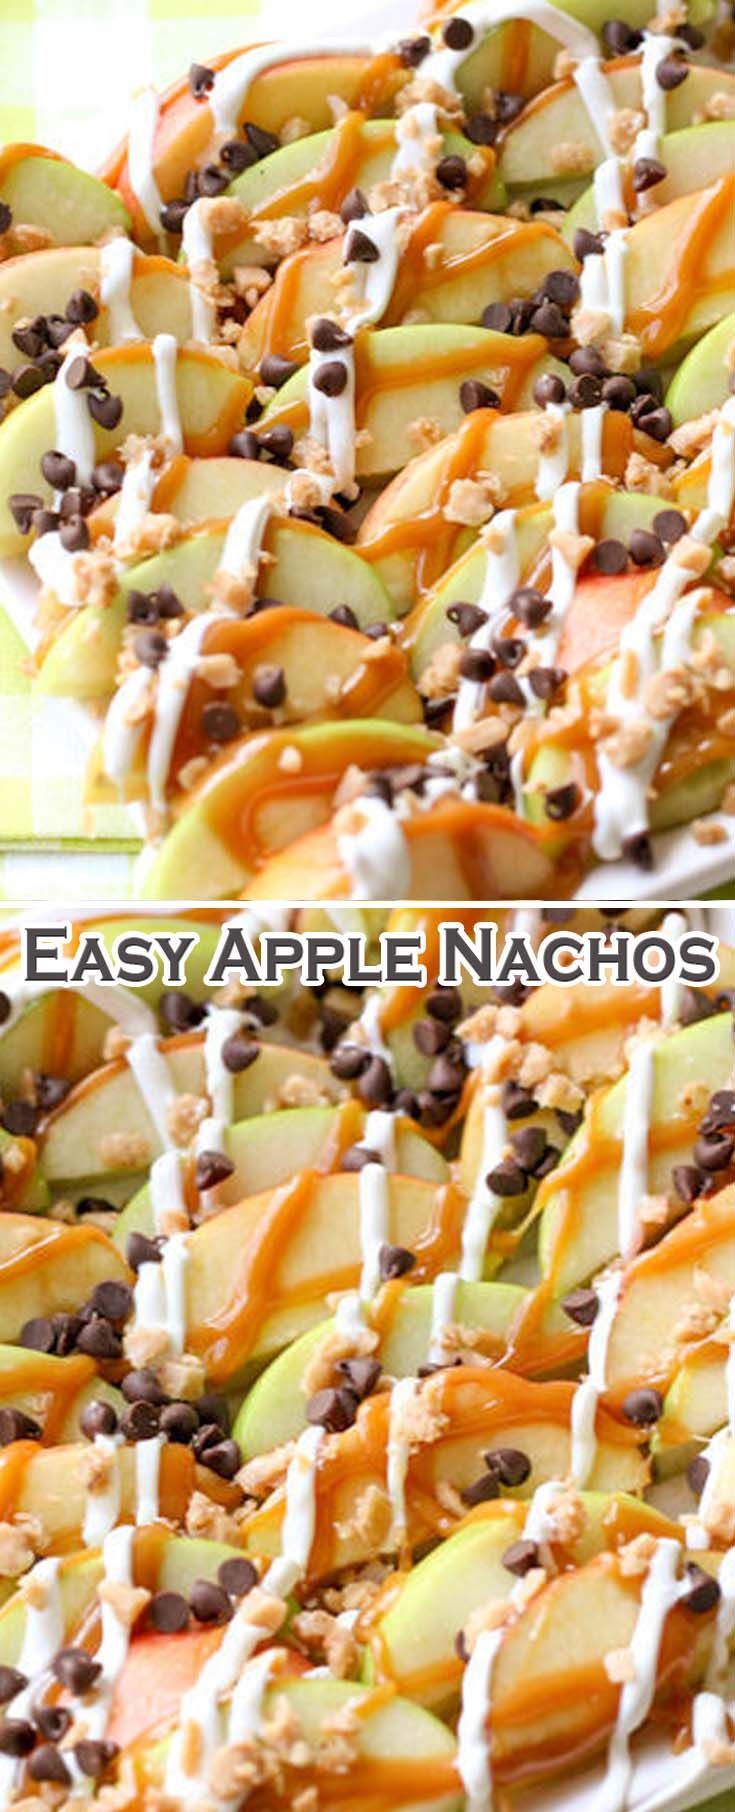 Easy Apple Nachos